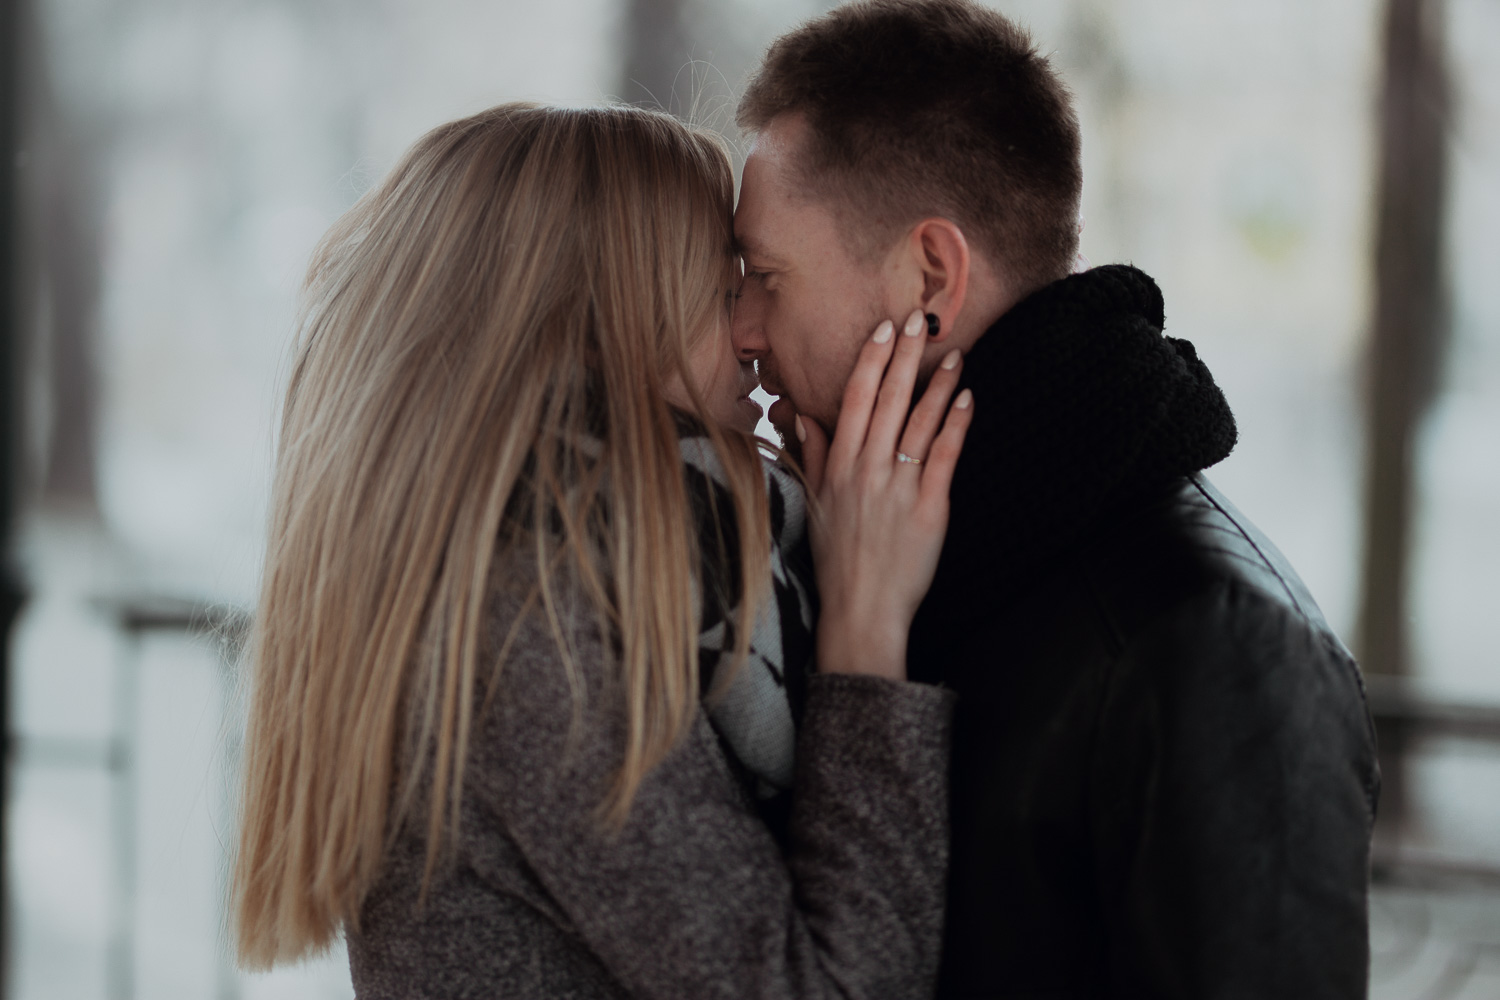 Engagement-photoshoot-in-winter-krakow-wawel-21.jpg